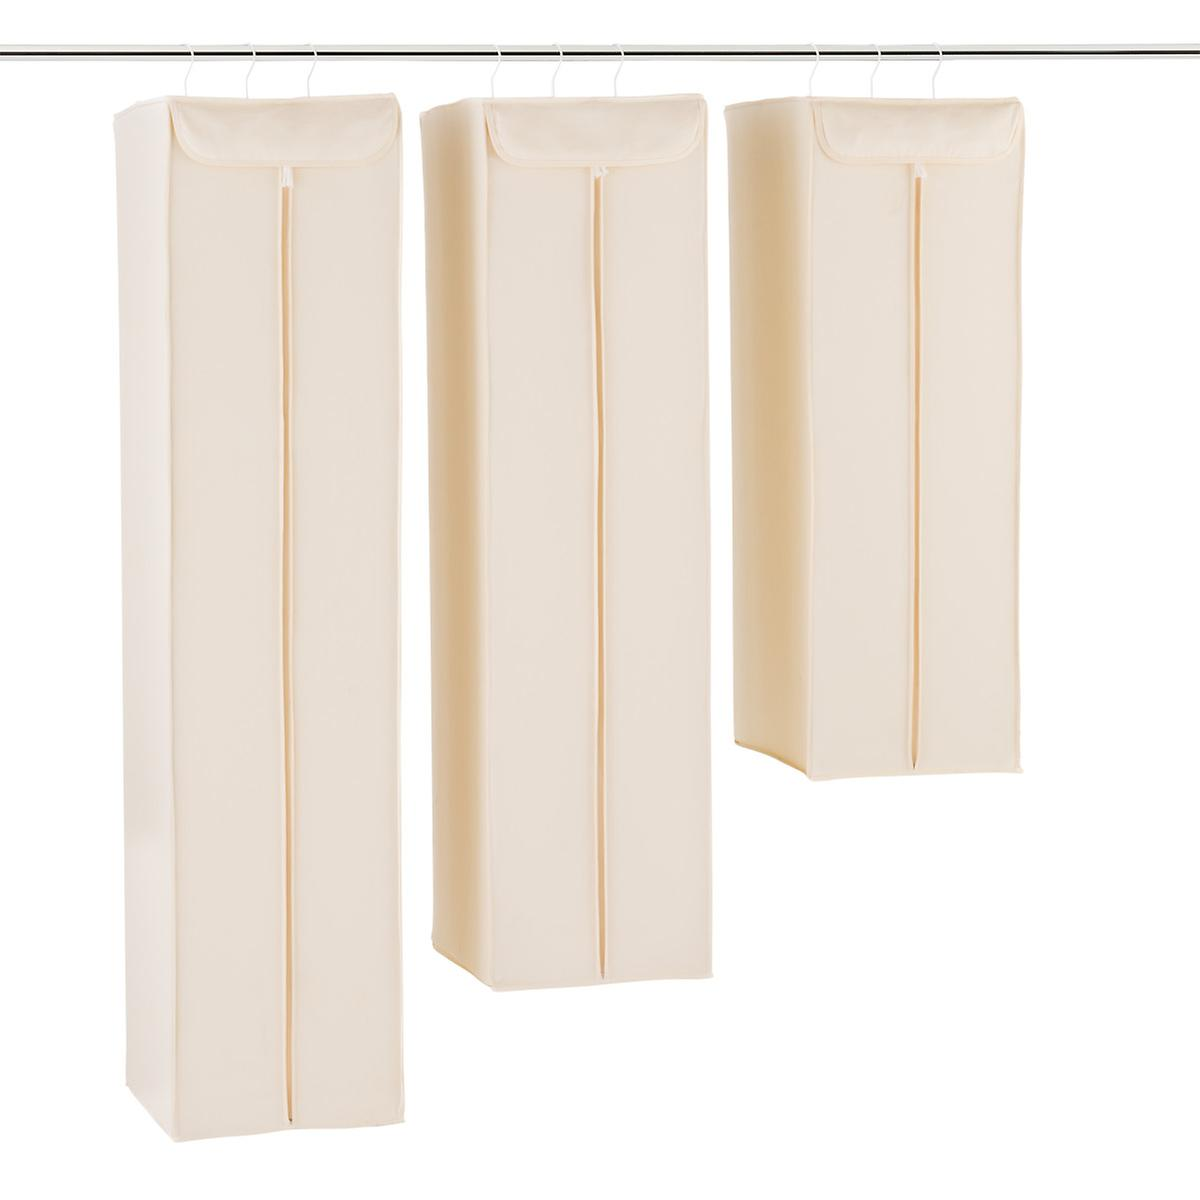 9282dcdb876f Suit Bags   Dress Bags - Natural Cotton Hanging Storage Bags